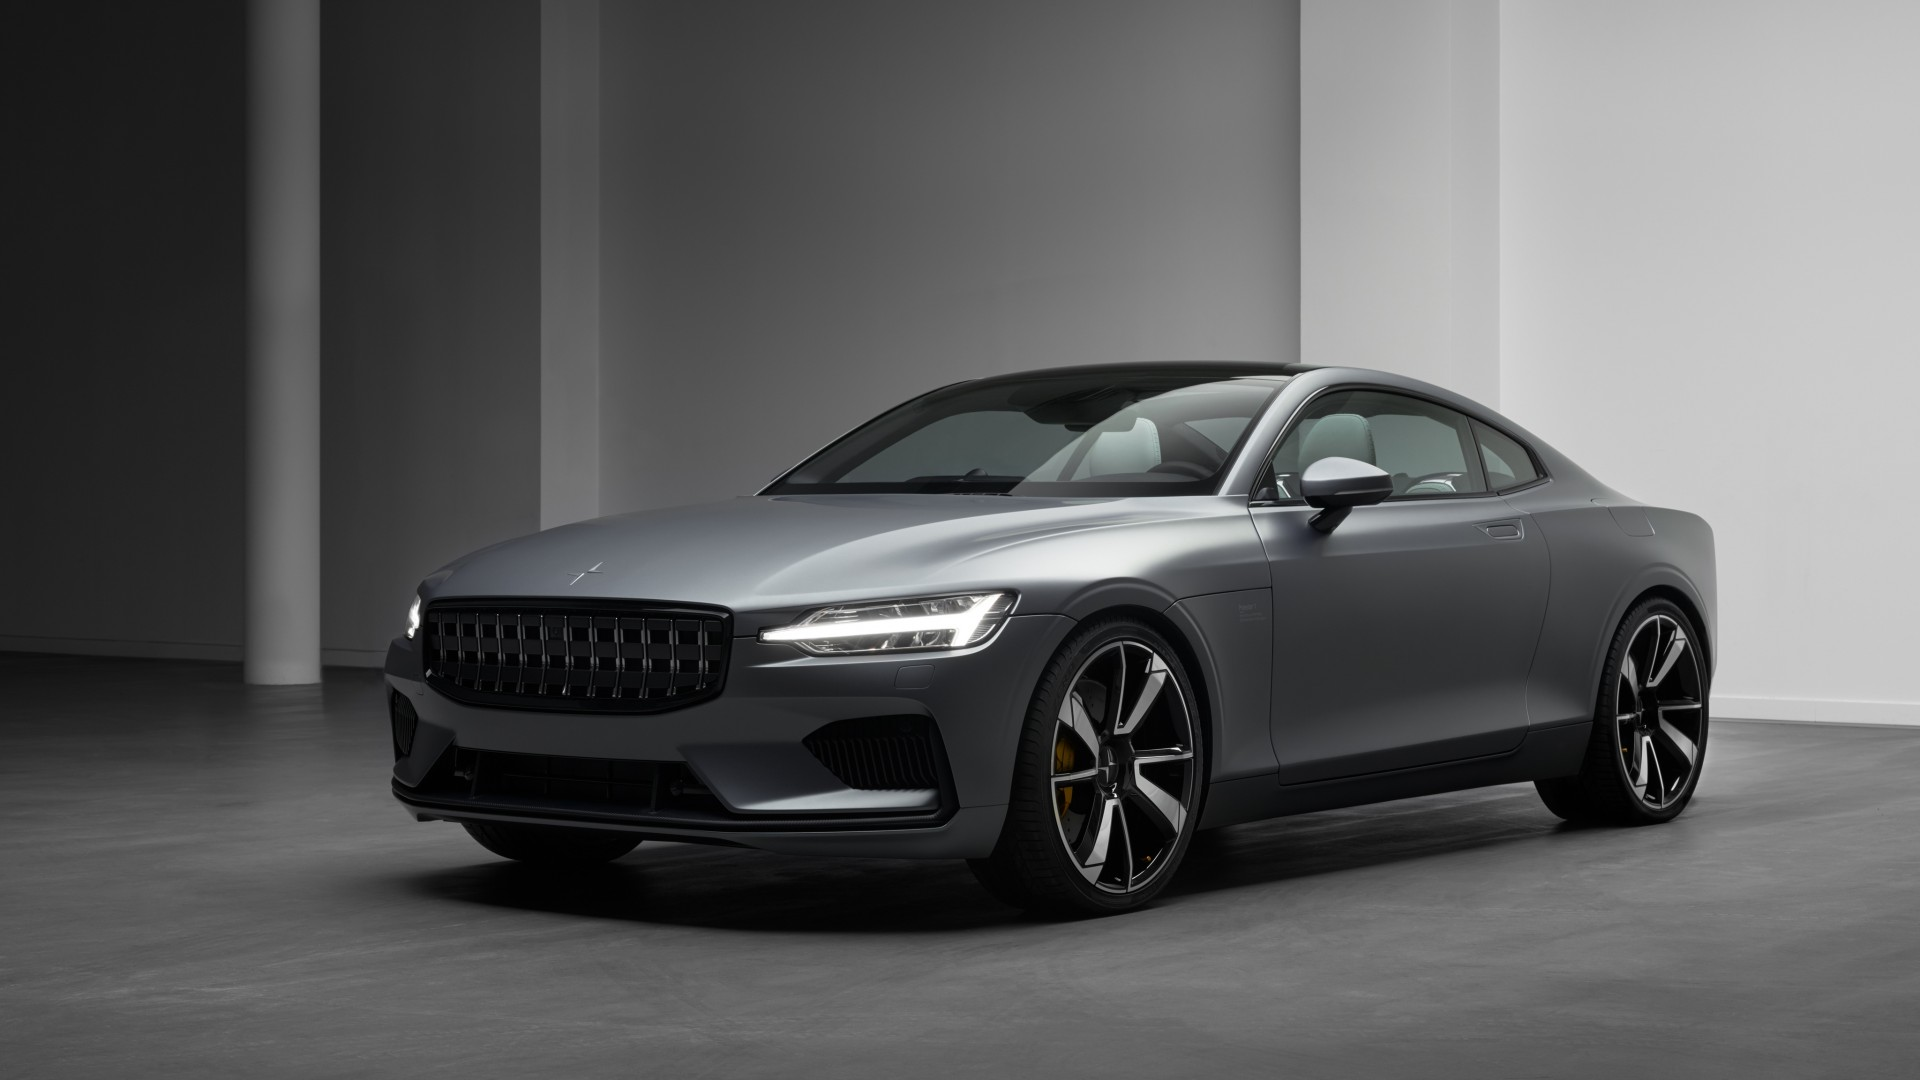 2019 Polestar 1 4k Wallpaper Hd Car Wallpapers Id 9722